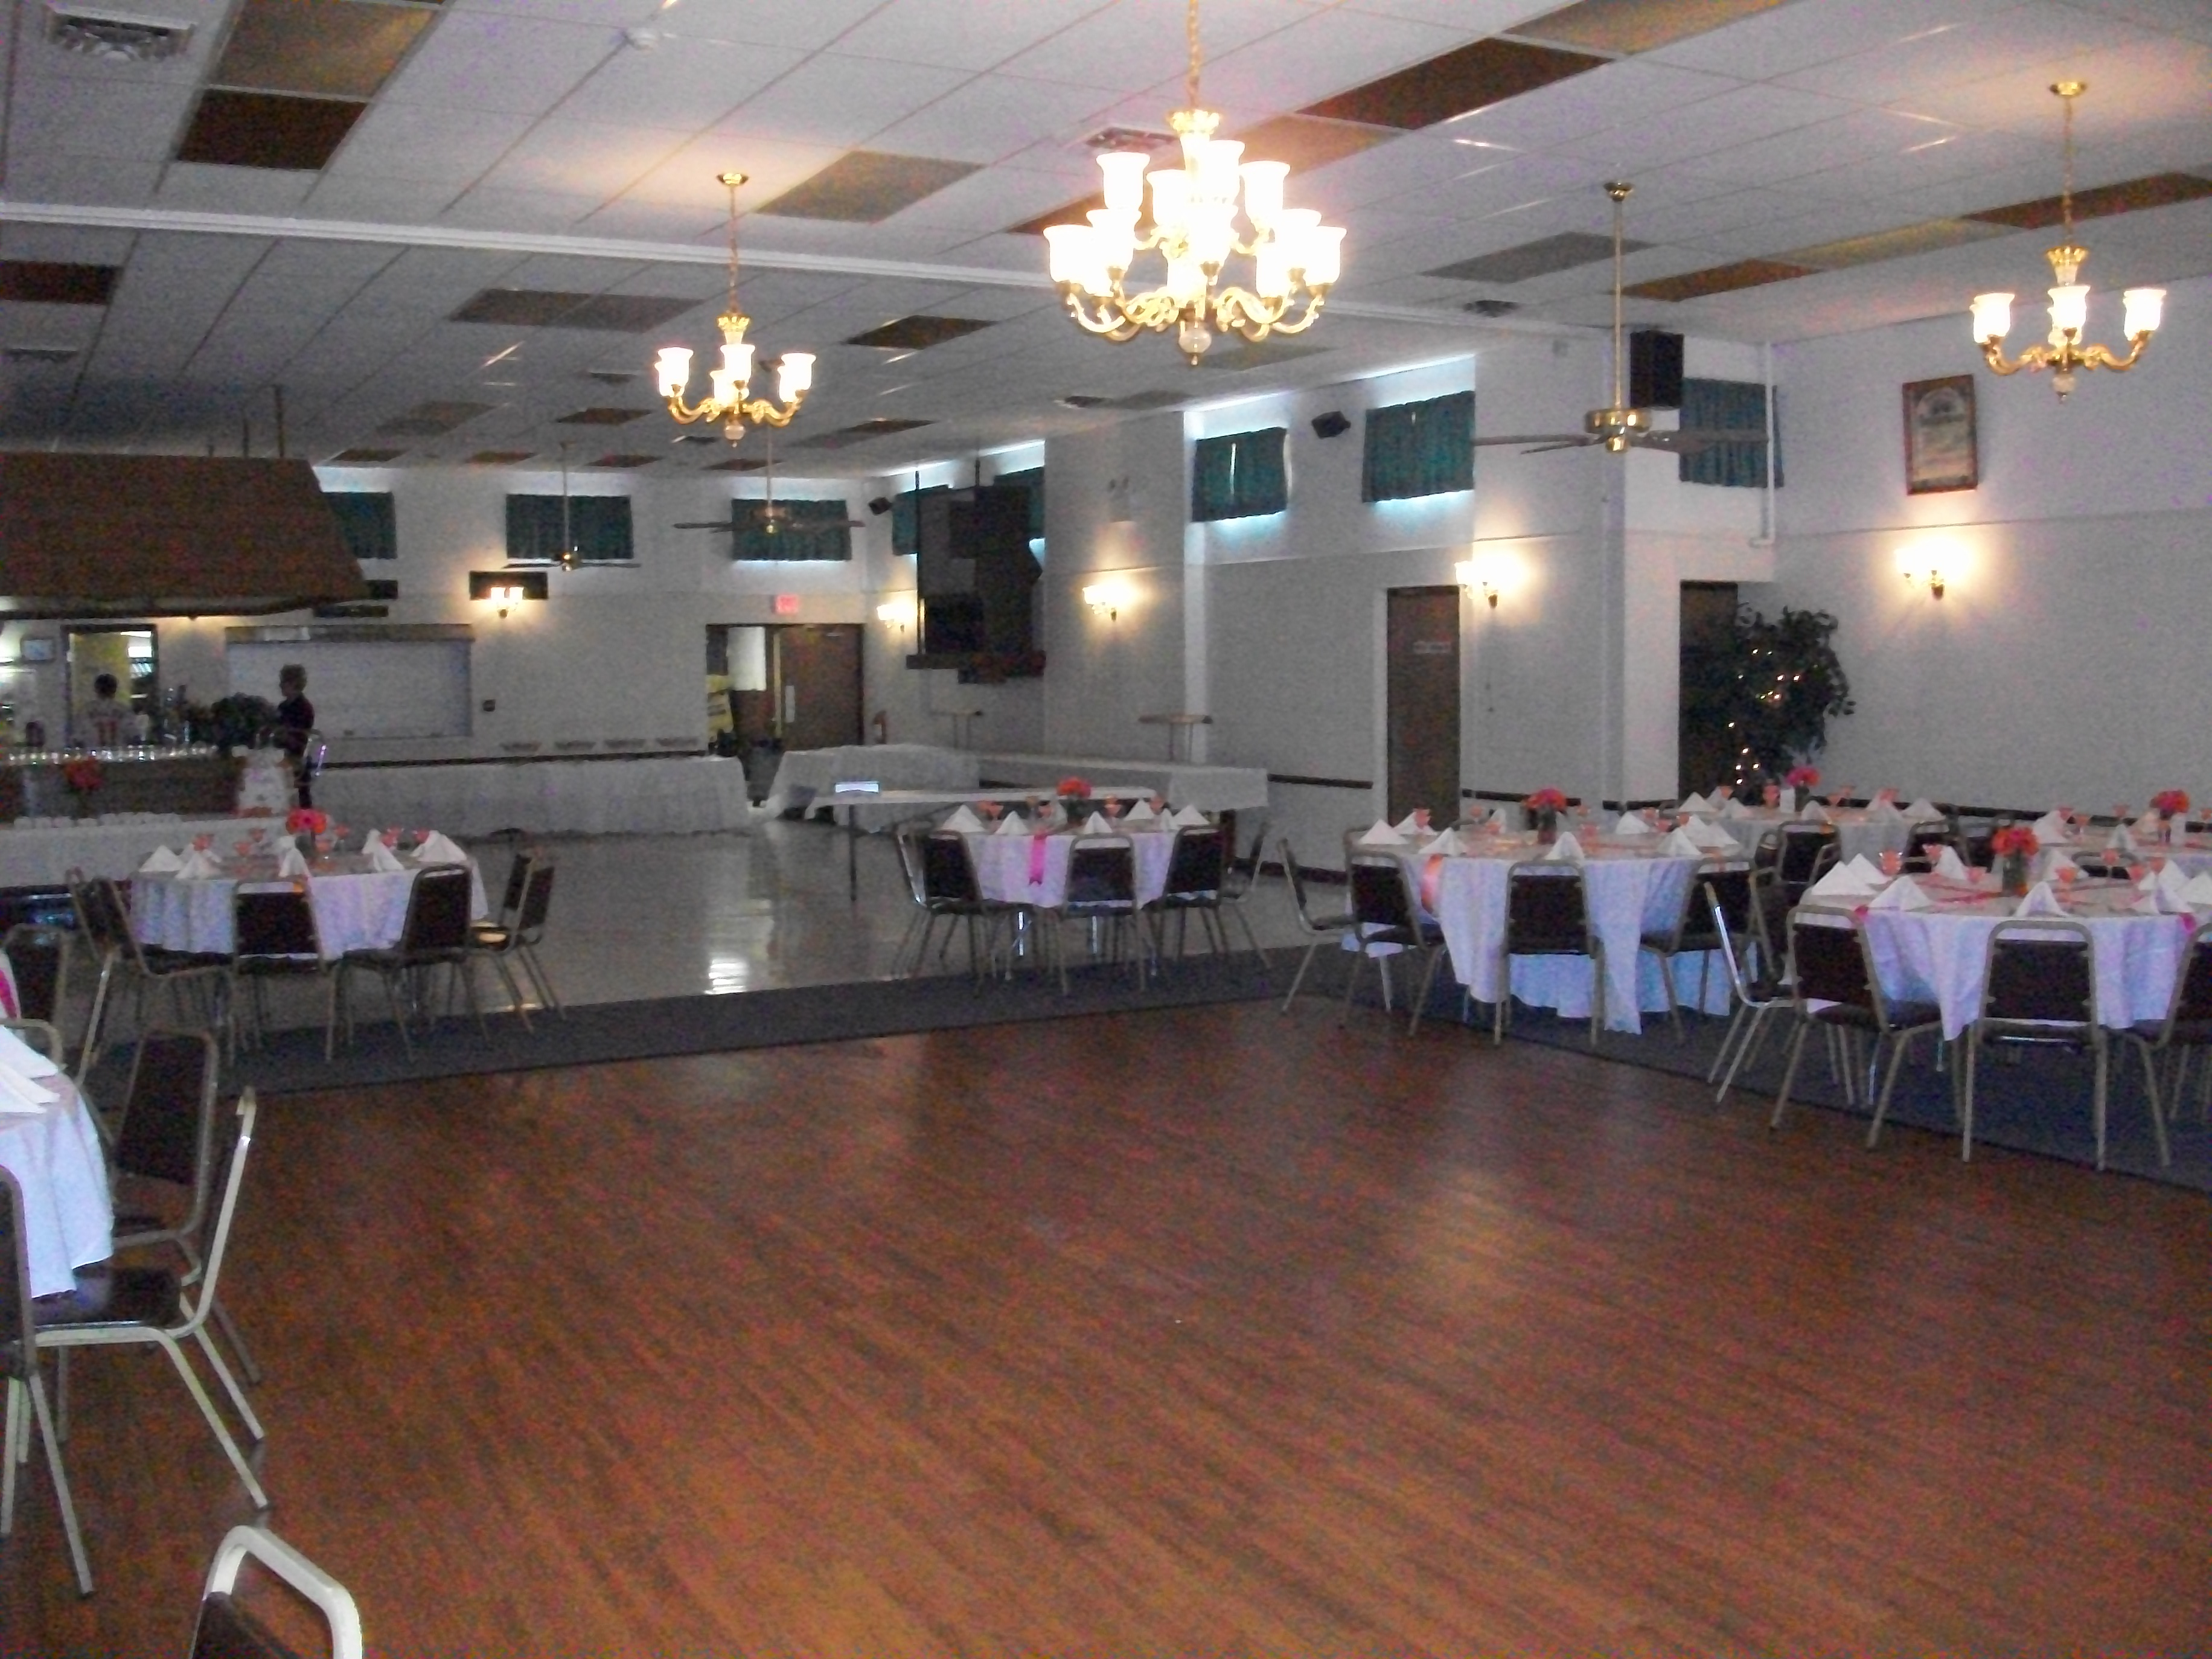 Air Conditioner Rental >> Knights of Columbus Council #1436 Hall Rentals in Delran, NJ